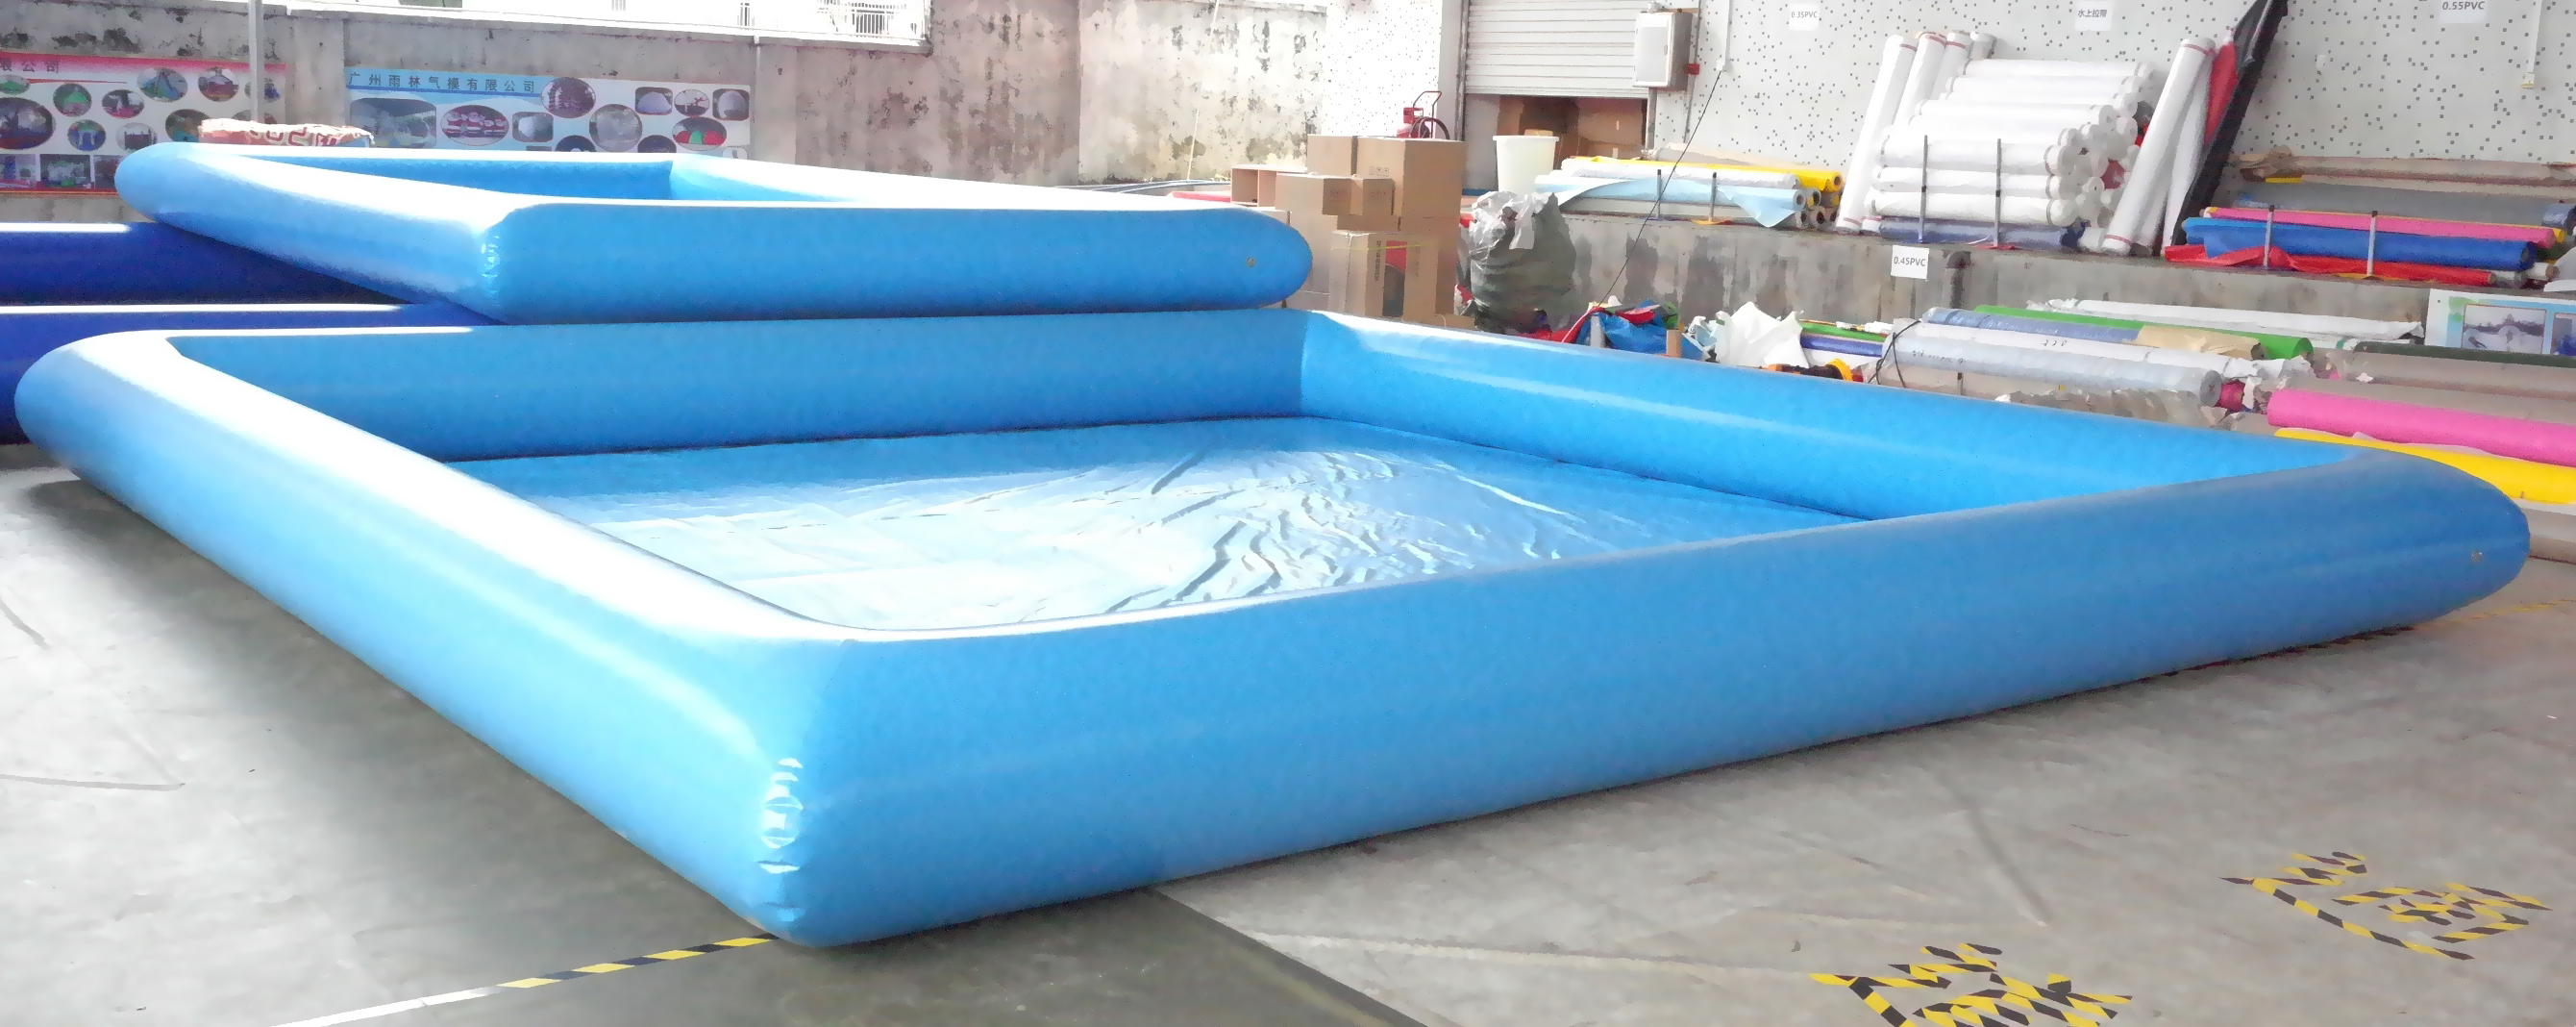 inflatable pool for water ball or bumper boats waterball